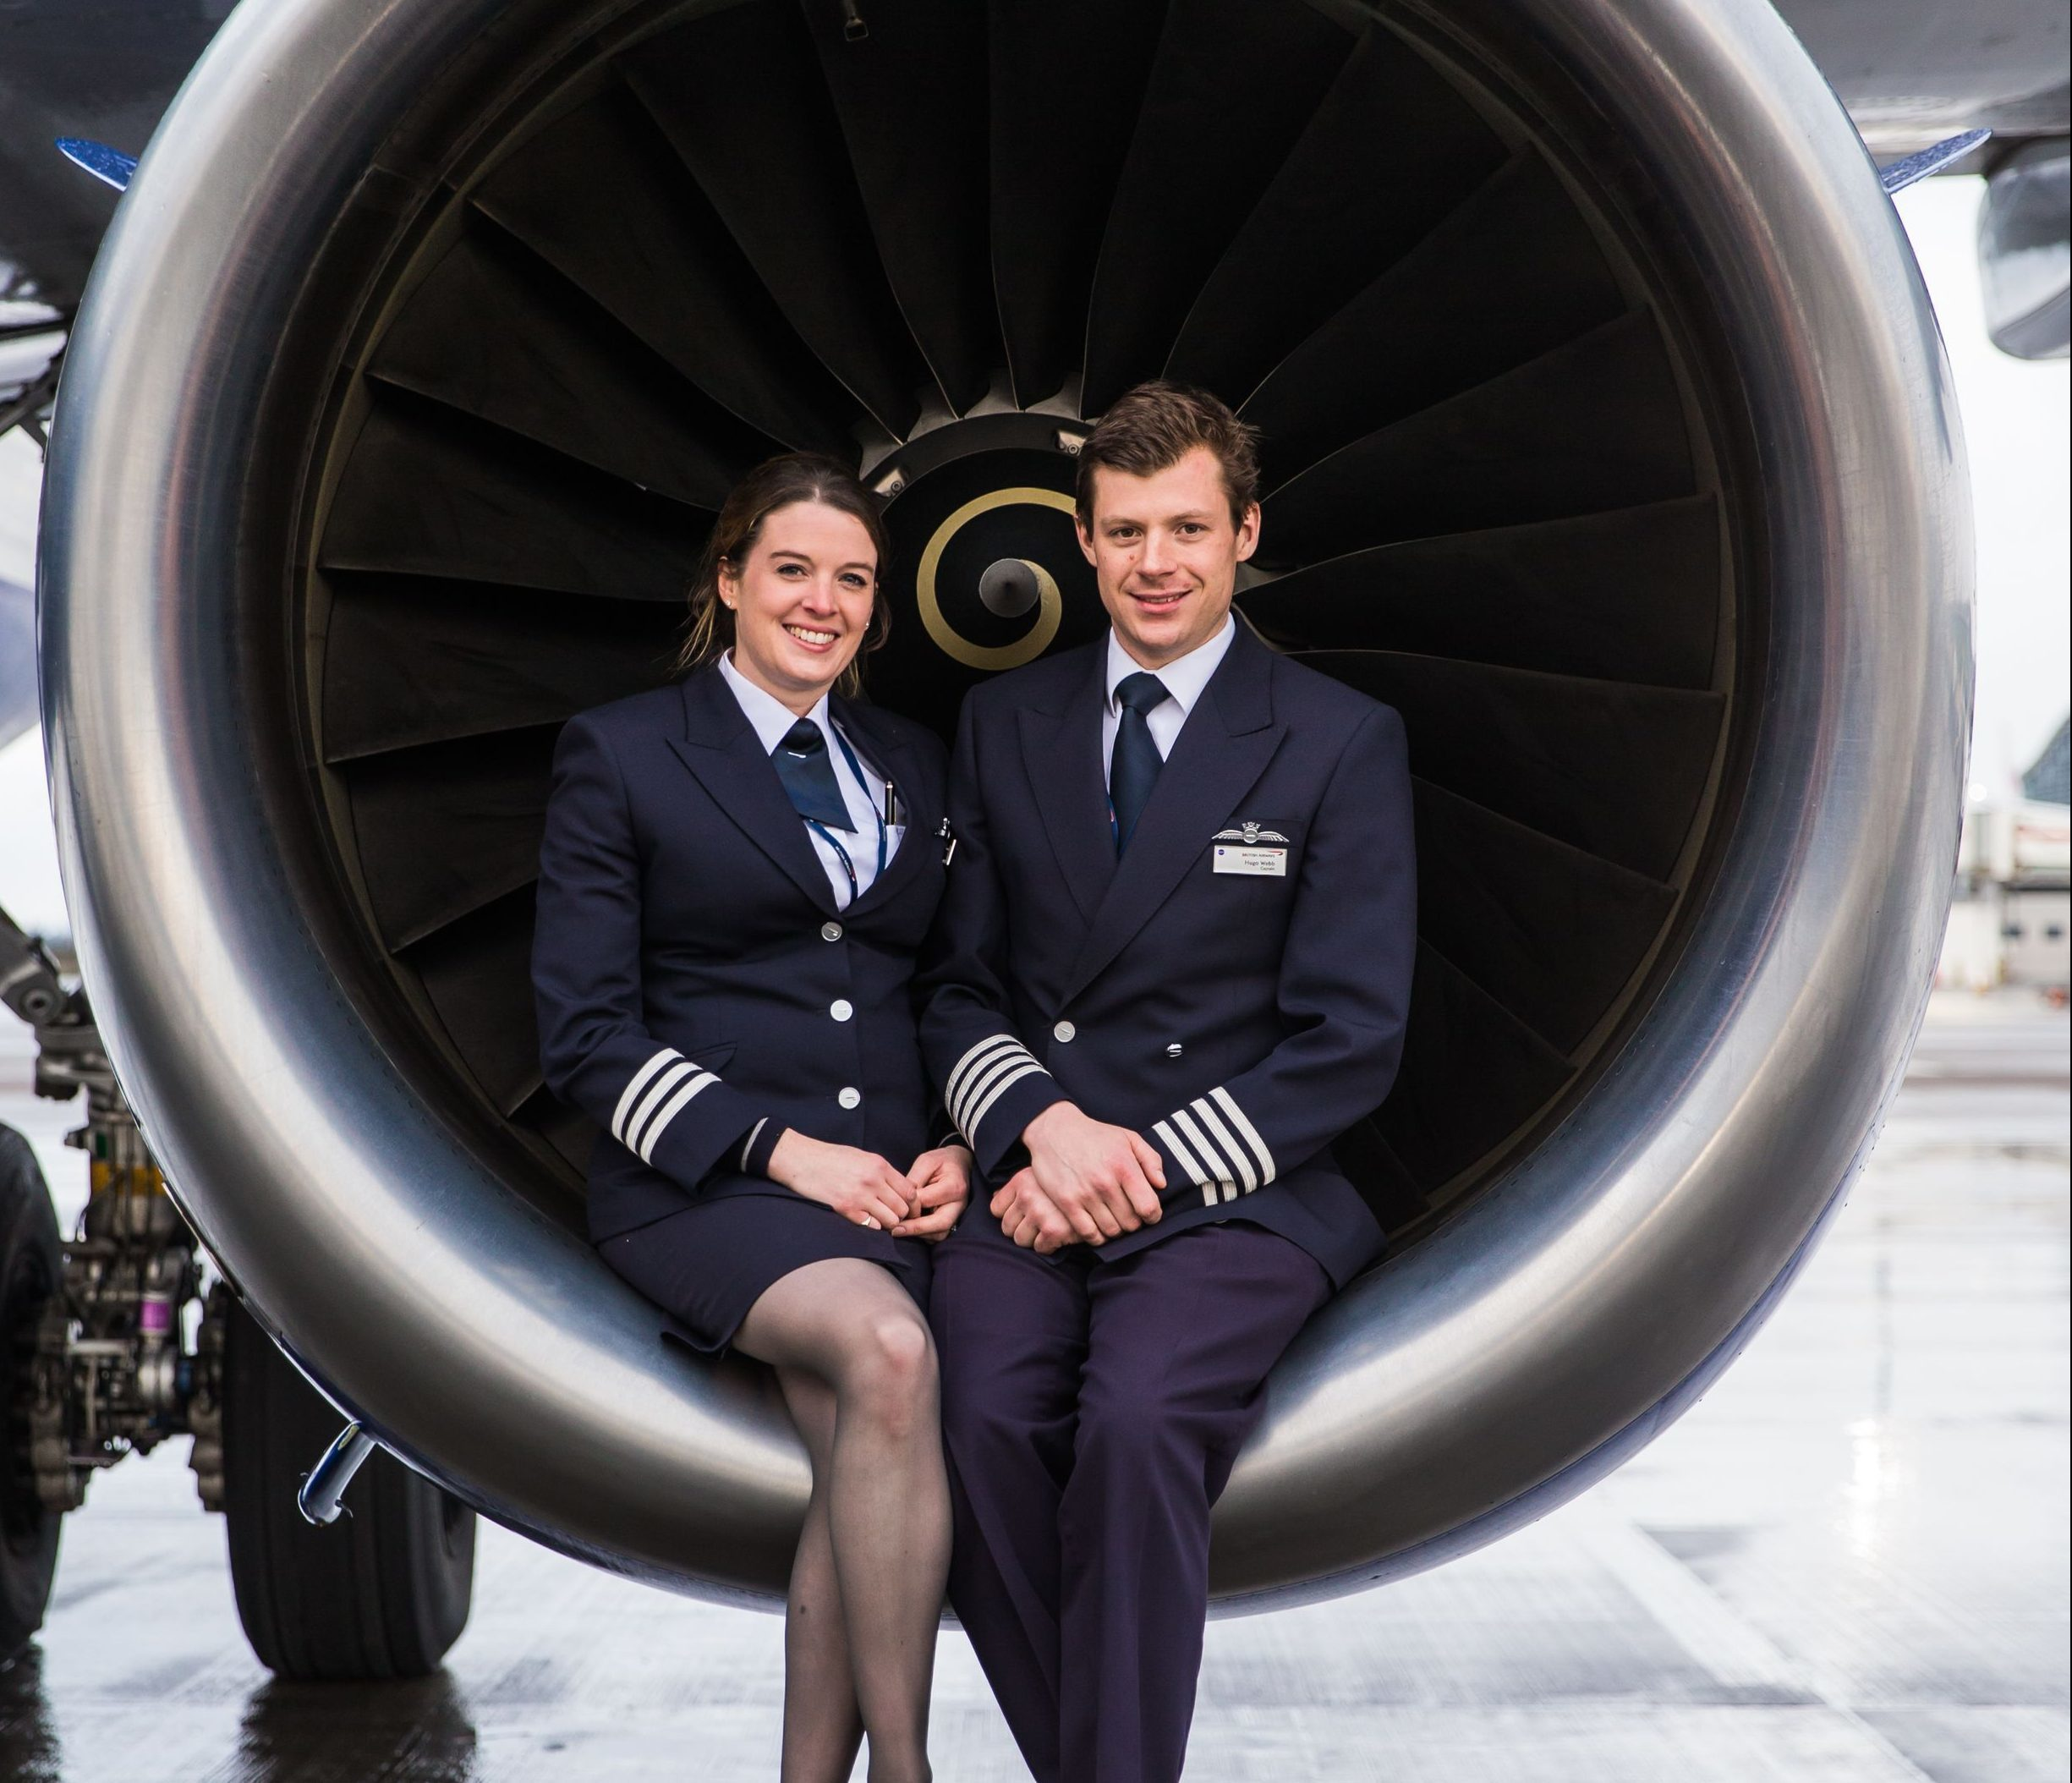 Hugo and Hannah Webb, who pilot British Airways flights together and have described how sharing a cockpit helps their relationship. (Stuart Bailey/British Airways/PA Wire)